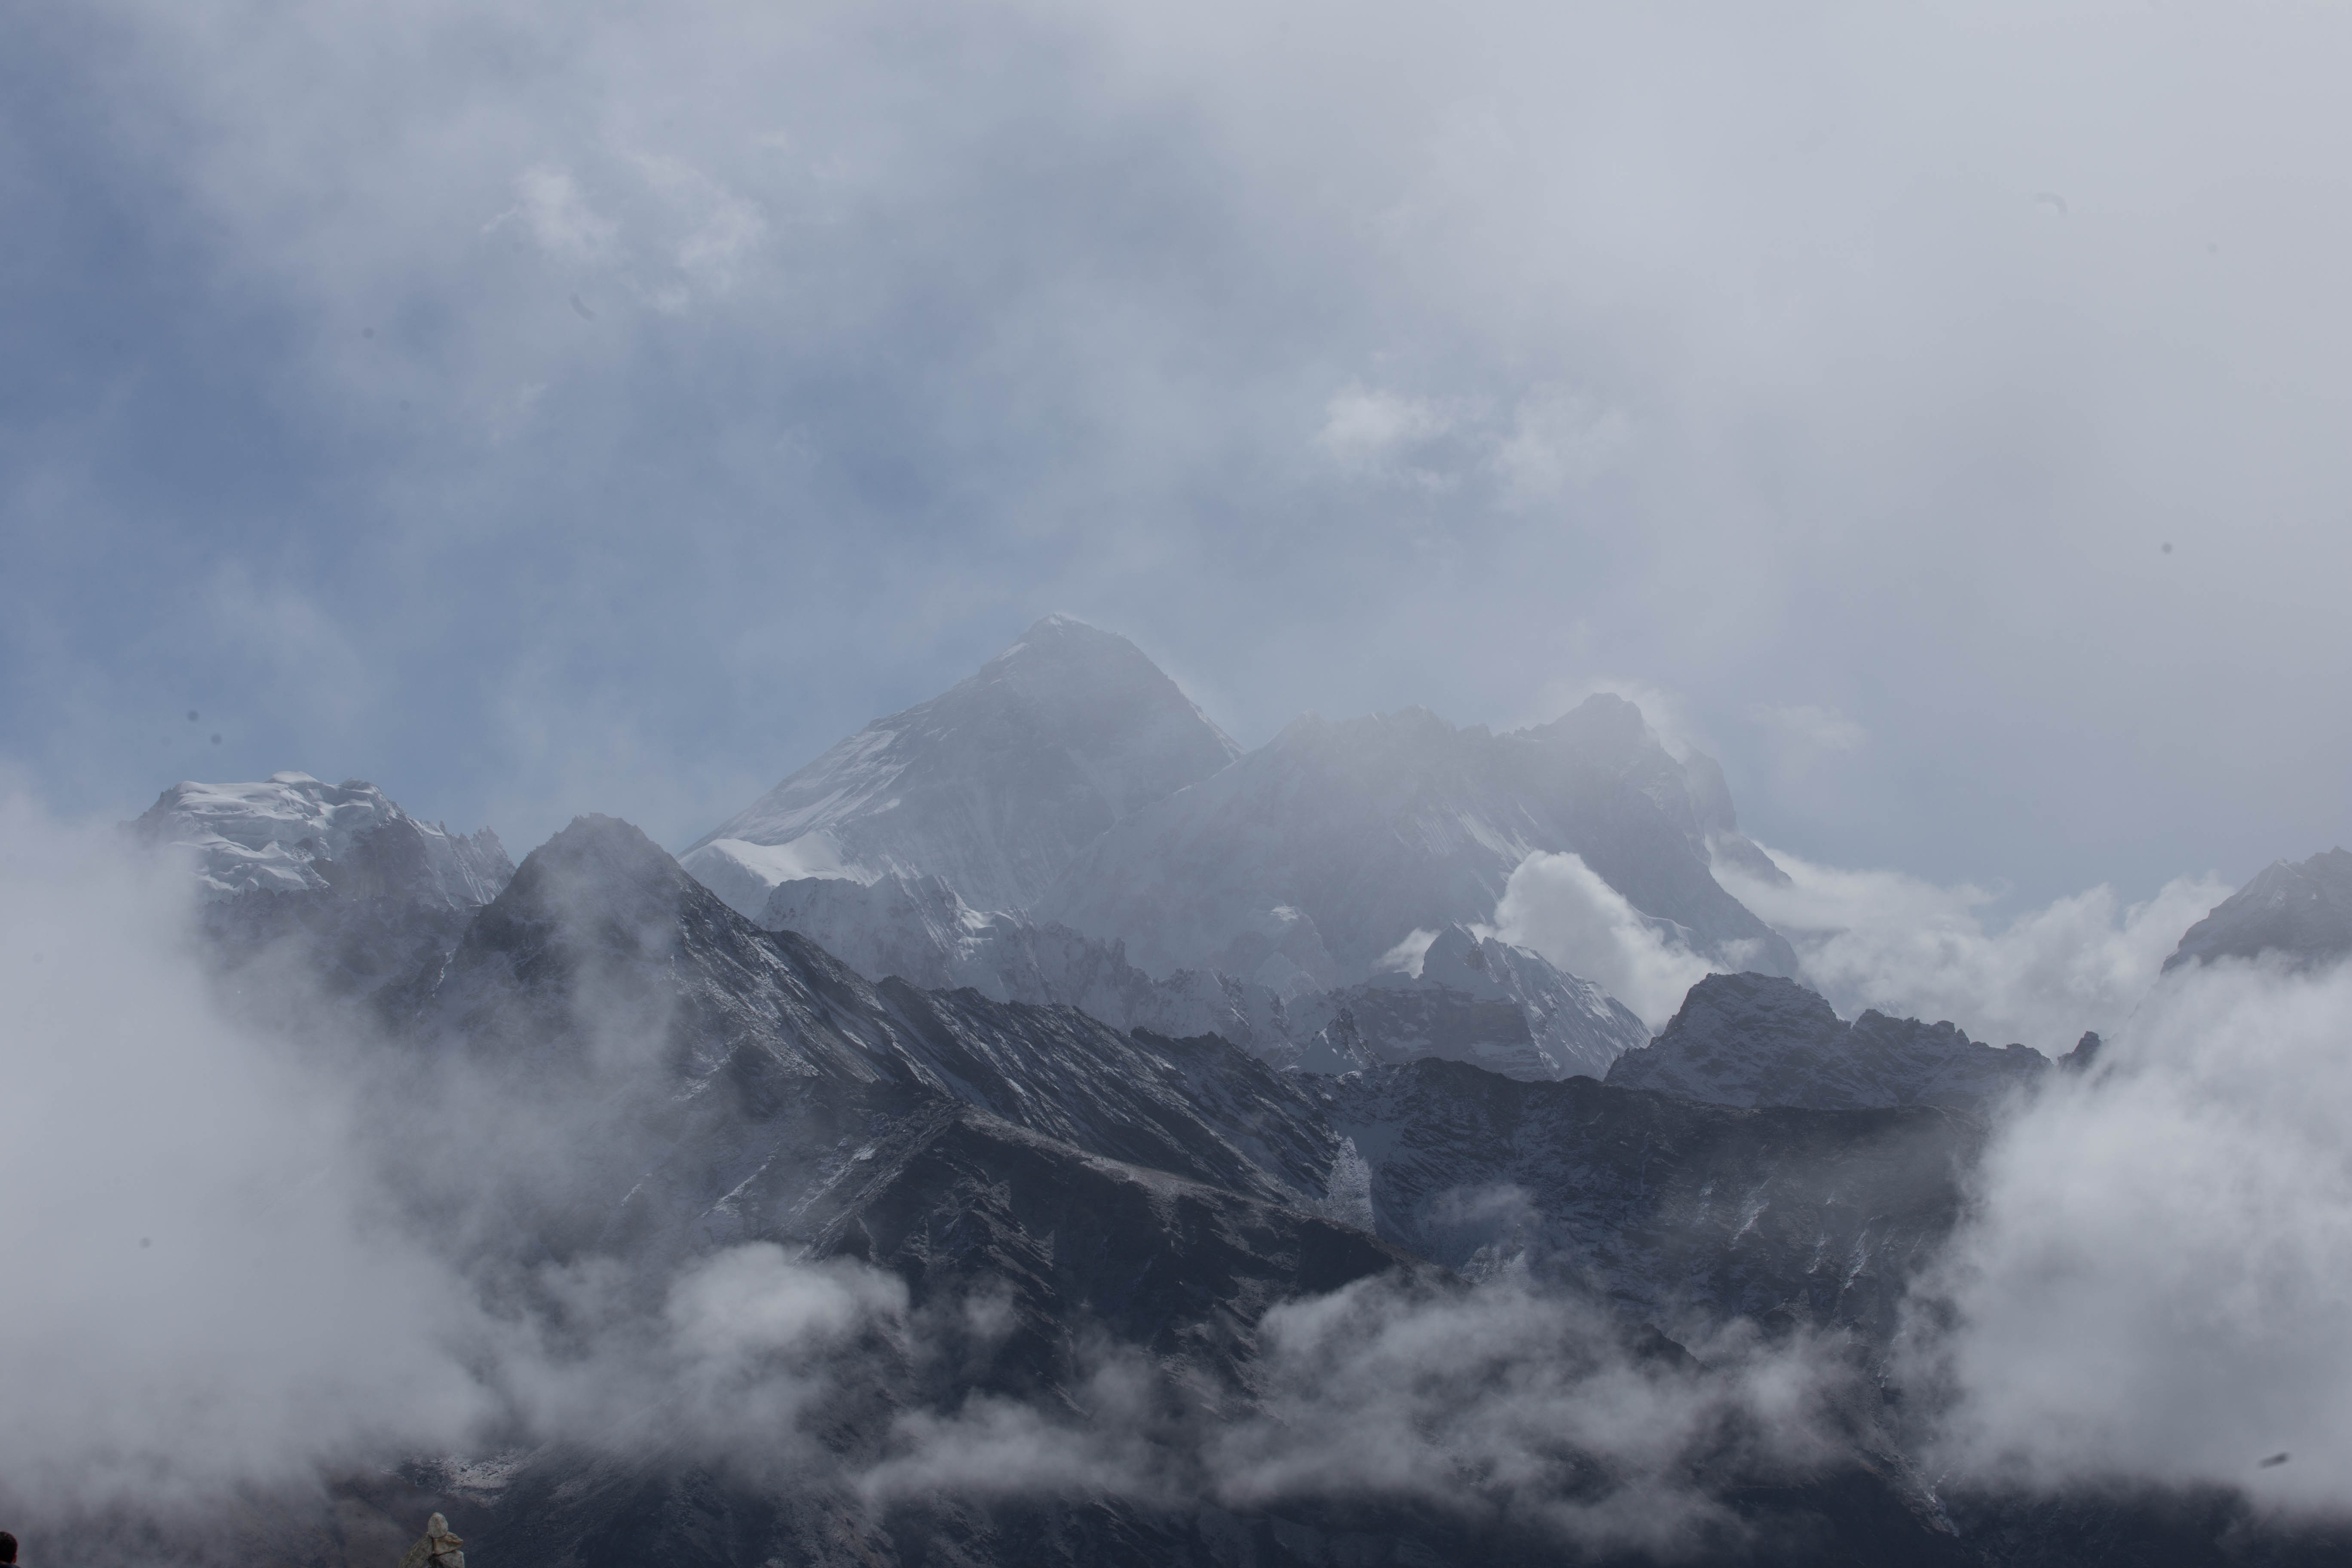 Mount Everest and the clouds